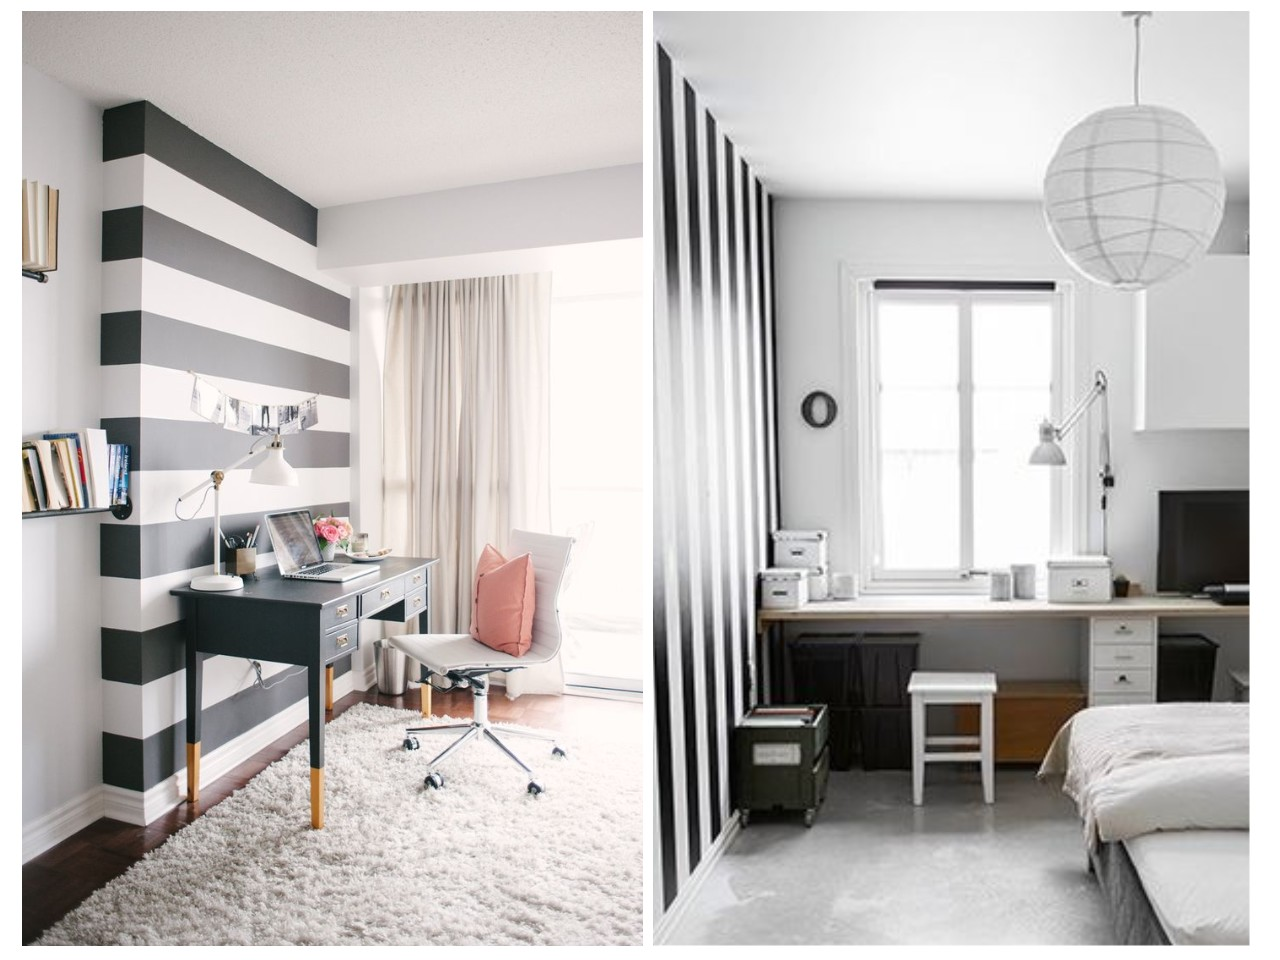 12 tips para conseguir un estudio en blanco y negro perfecto for Decoracion blanco y gris